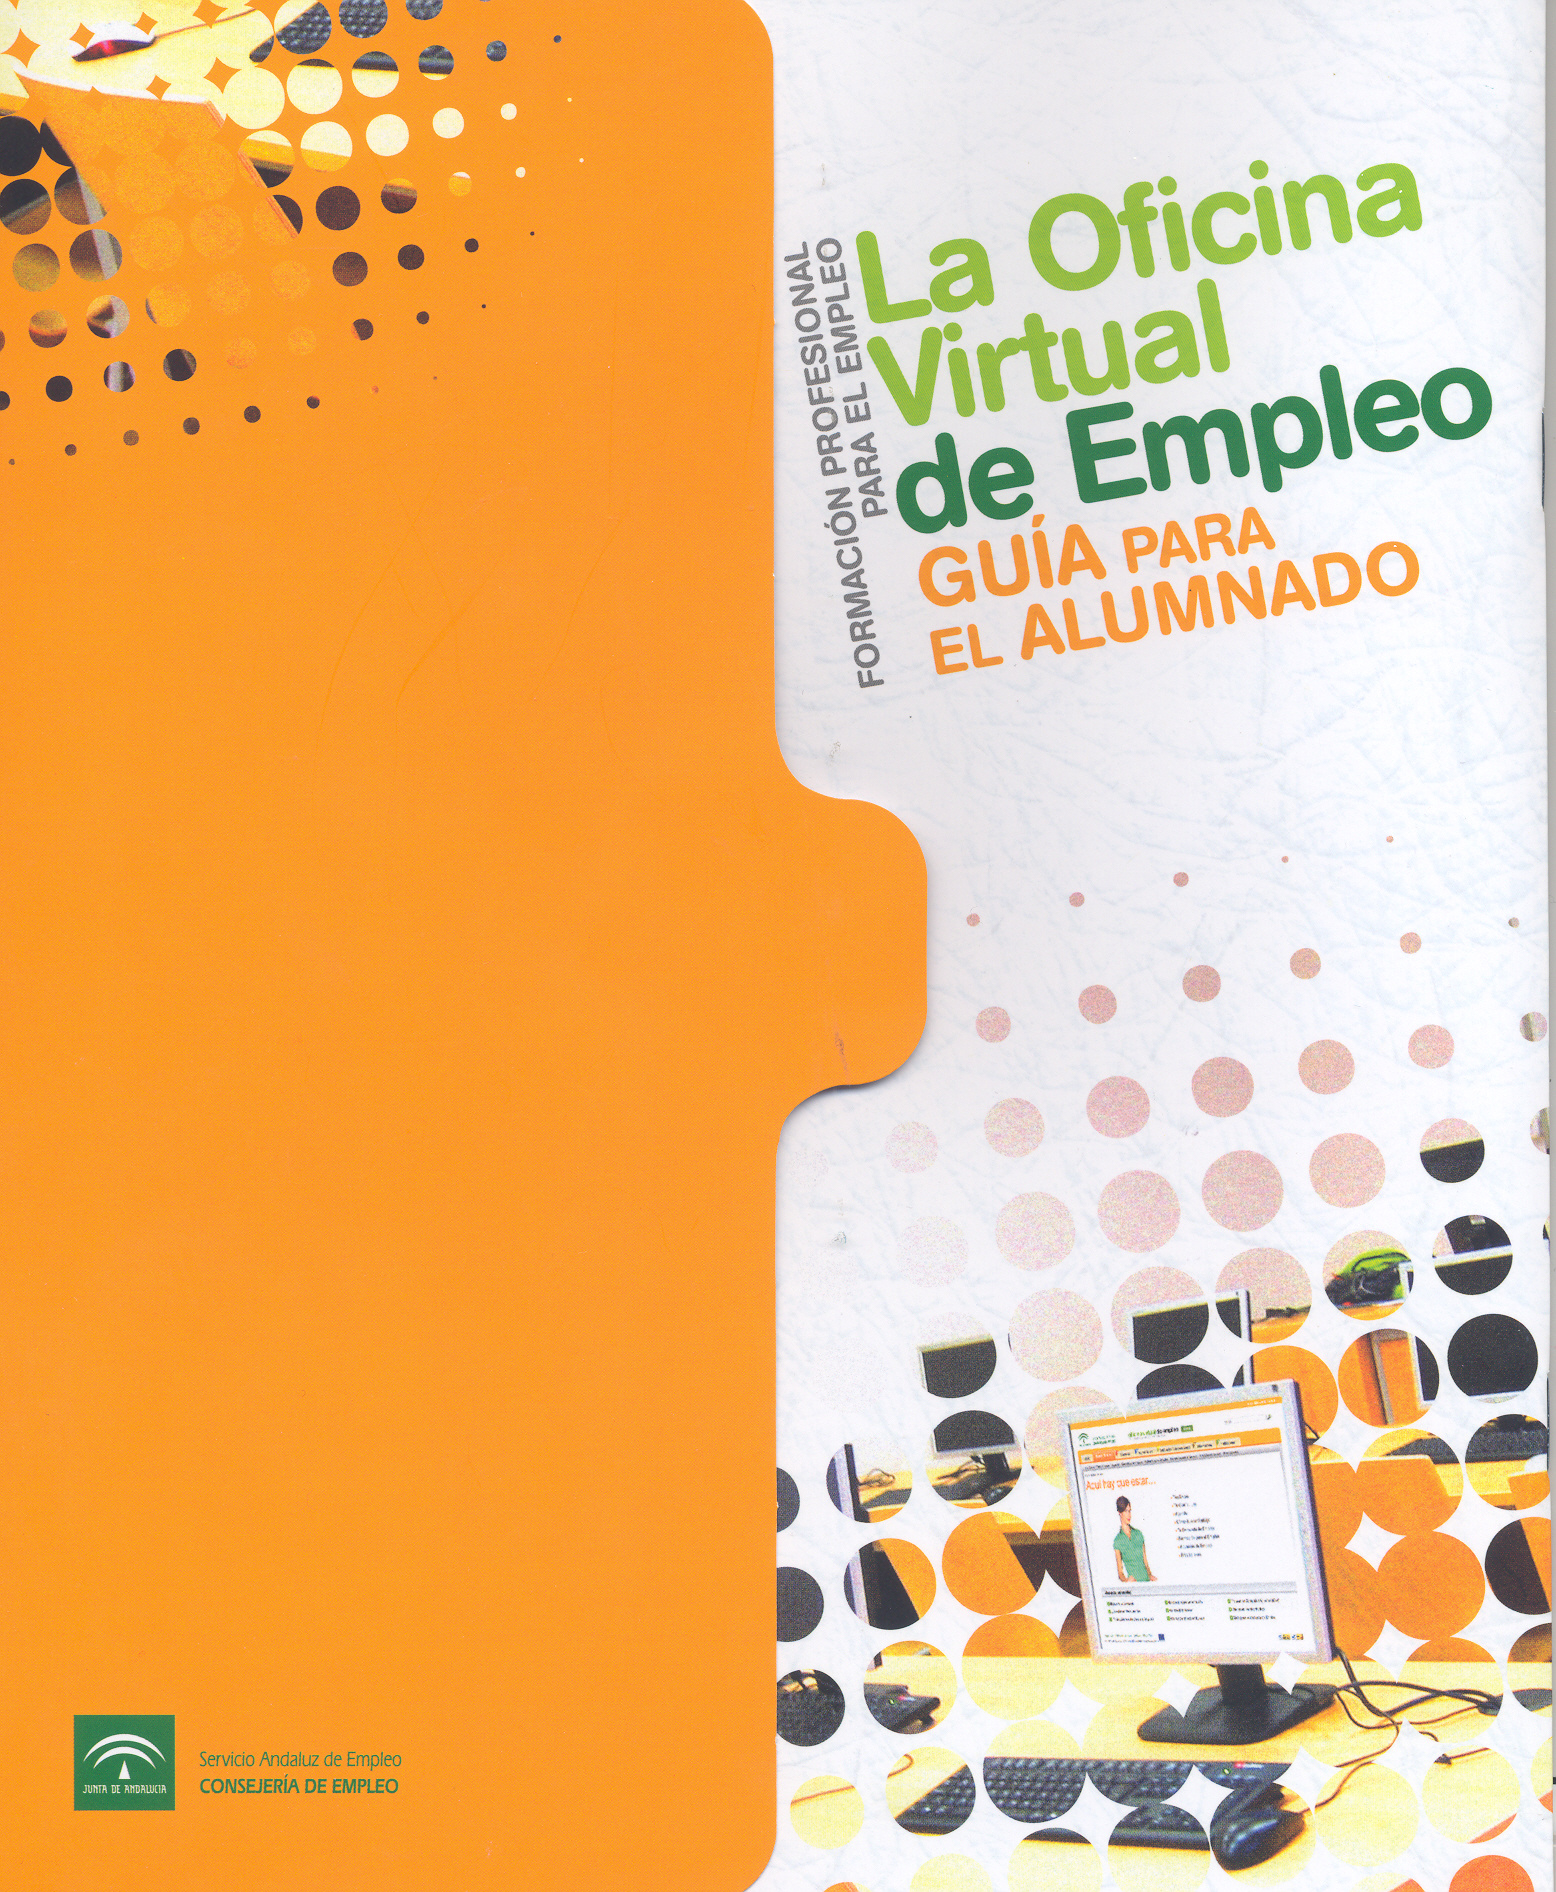 Junta de andaluc a la oficina virtual de empleo folleto for Oficina virtual empleo